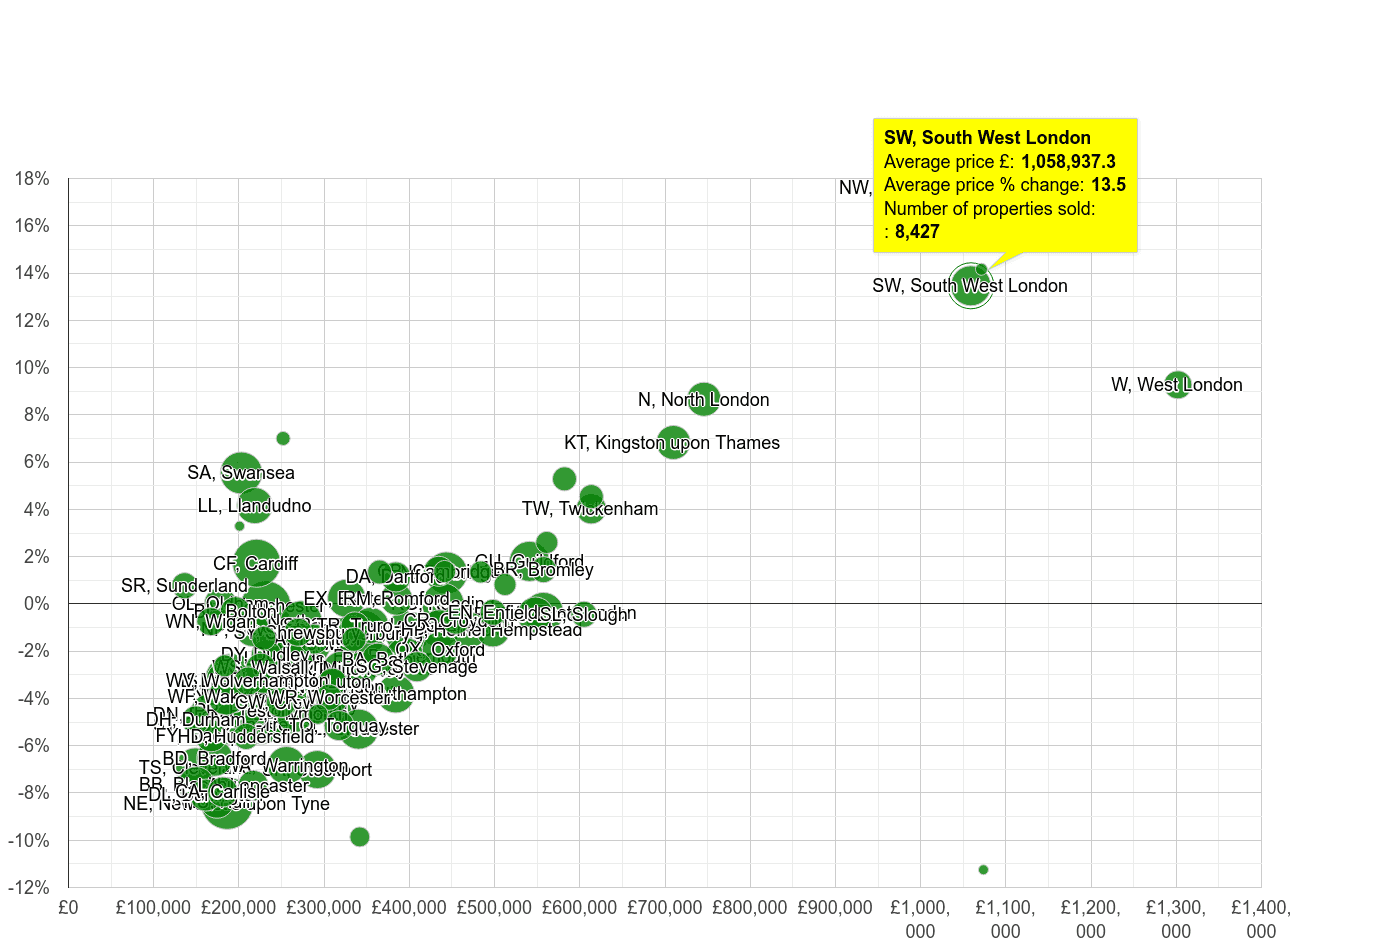 South West London house prices compared to other areas